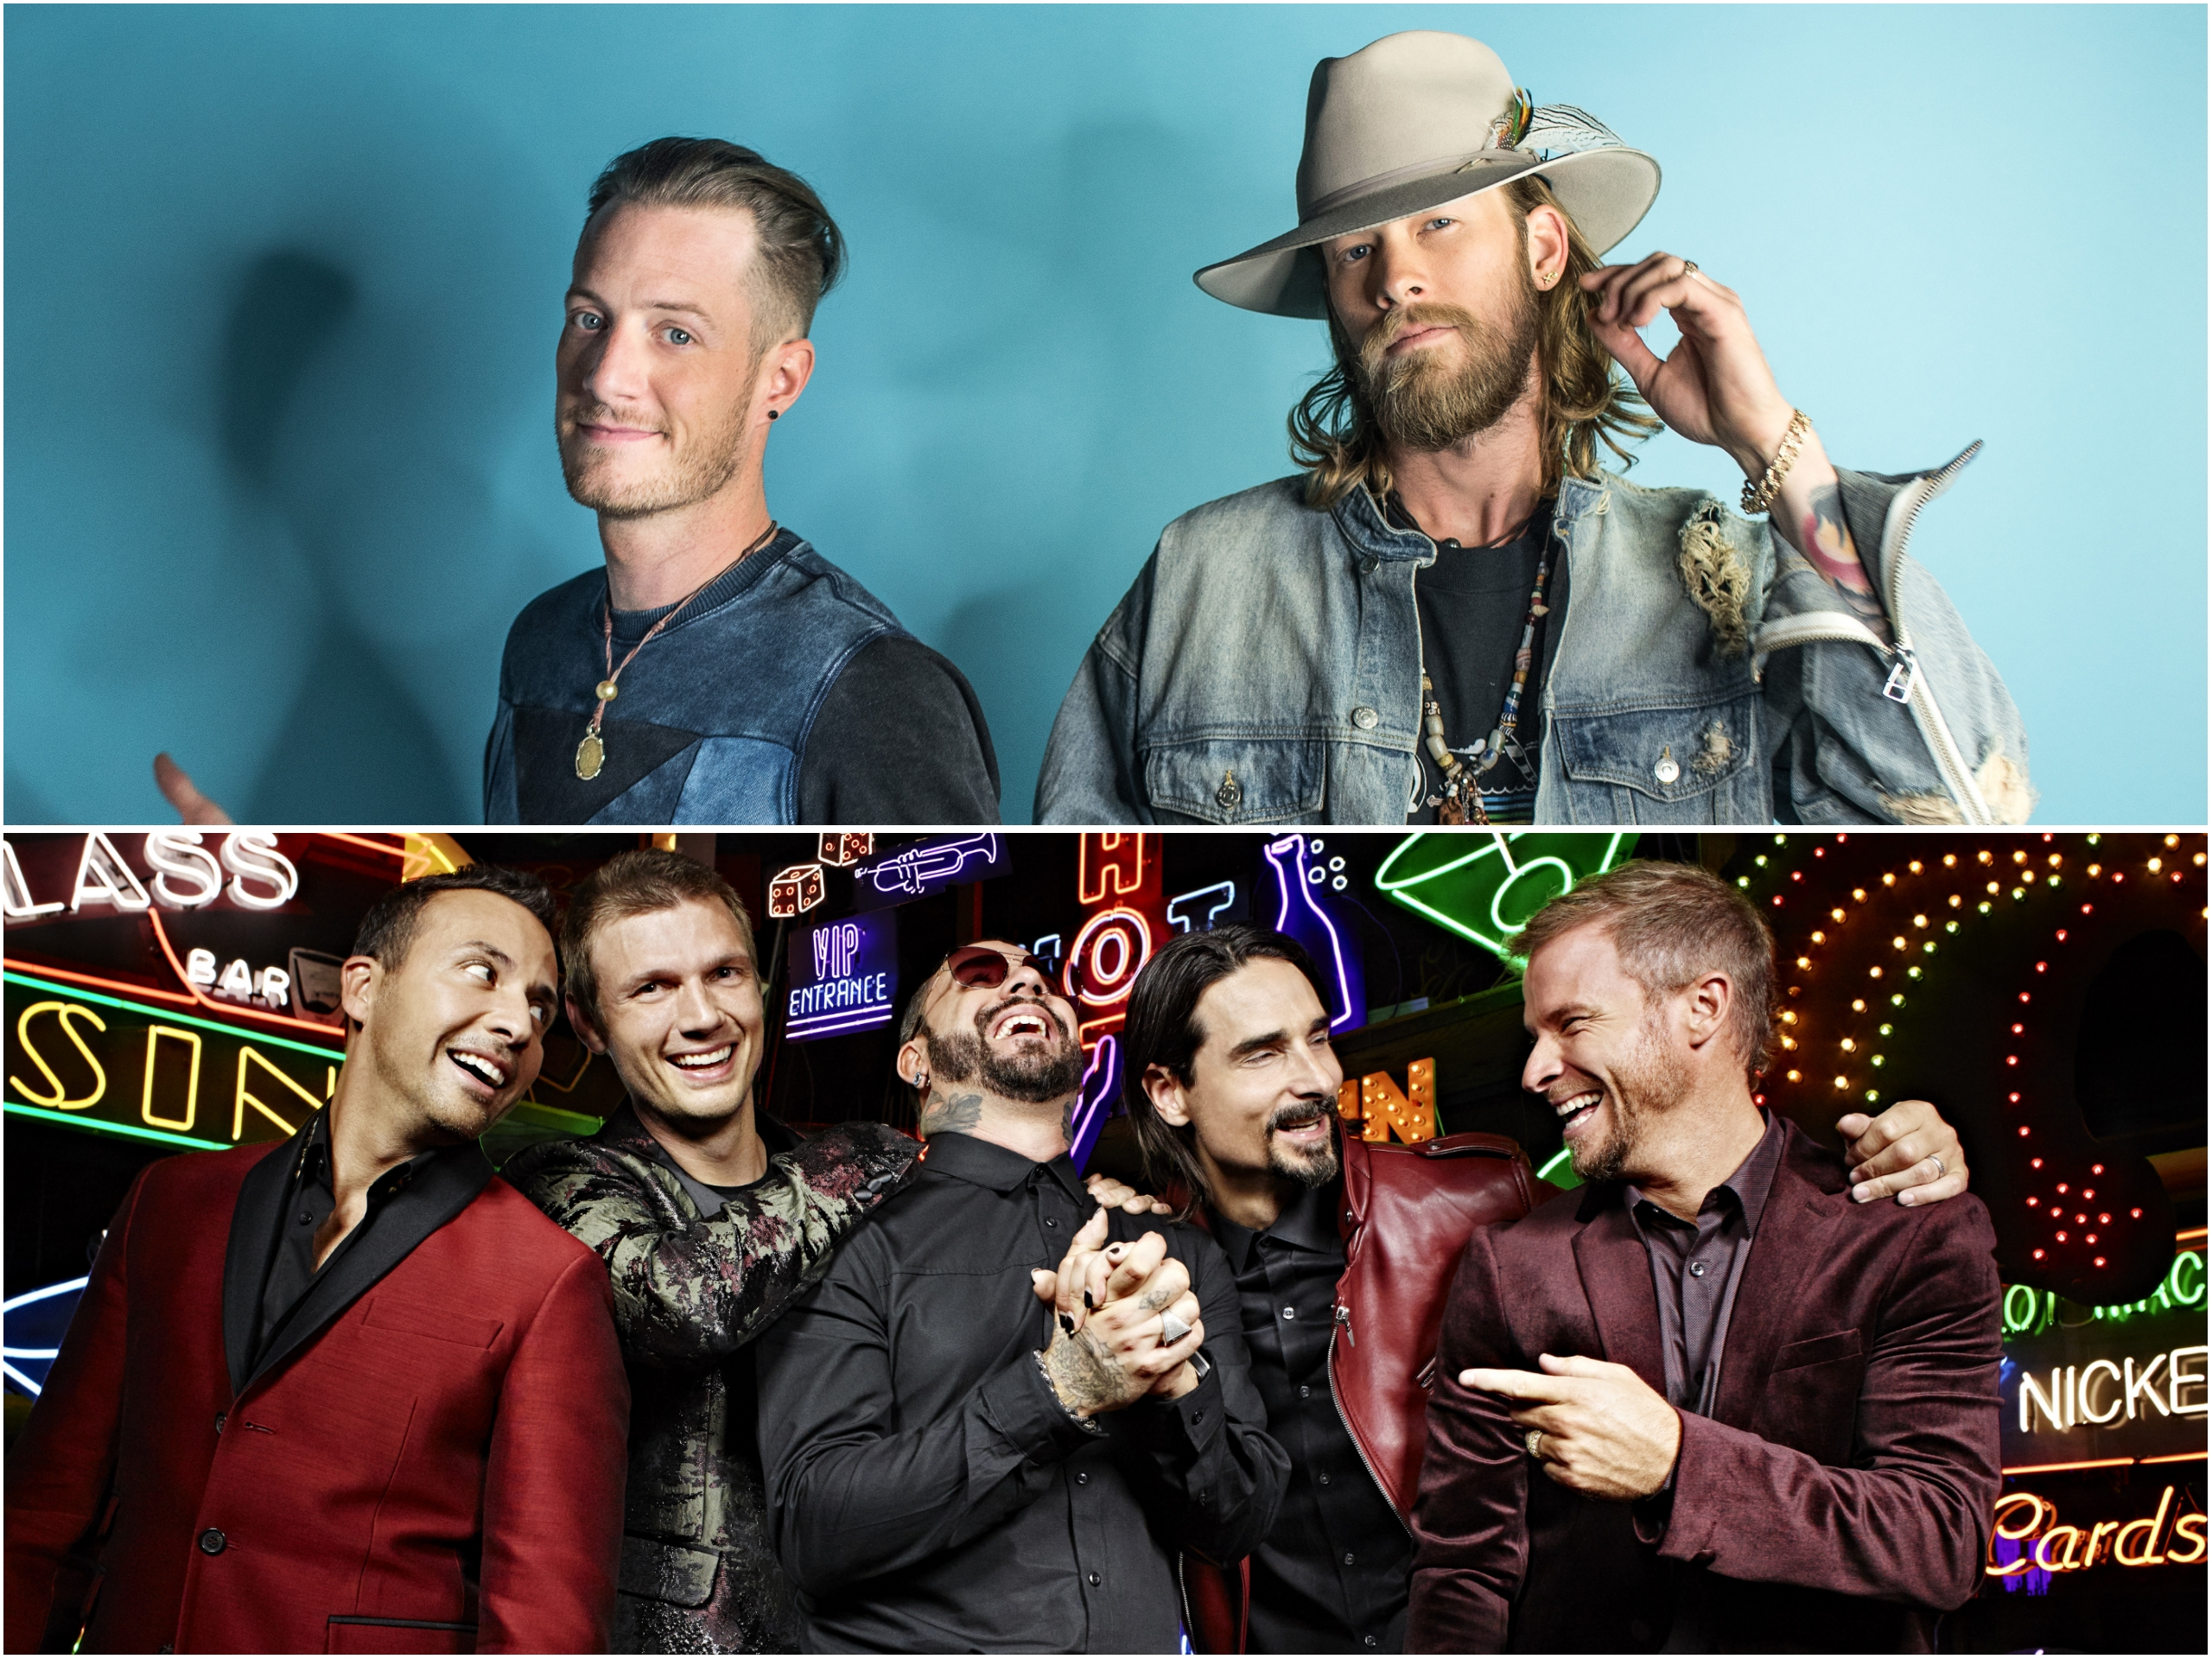 Florida Georgia Line and Backstreet Boys Team up Again for 'CMT Crossroads'